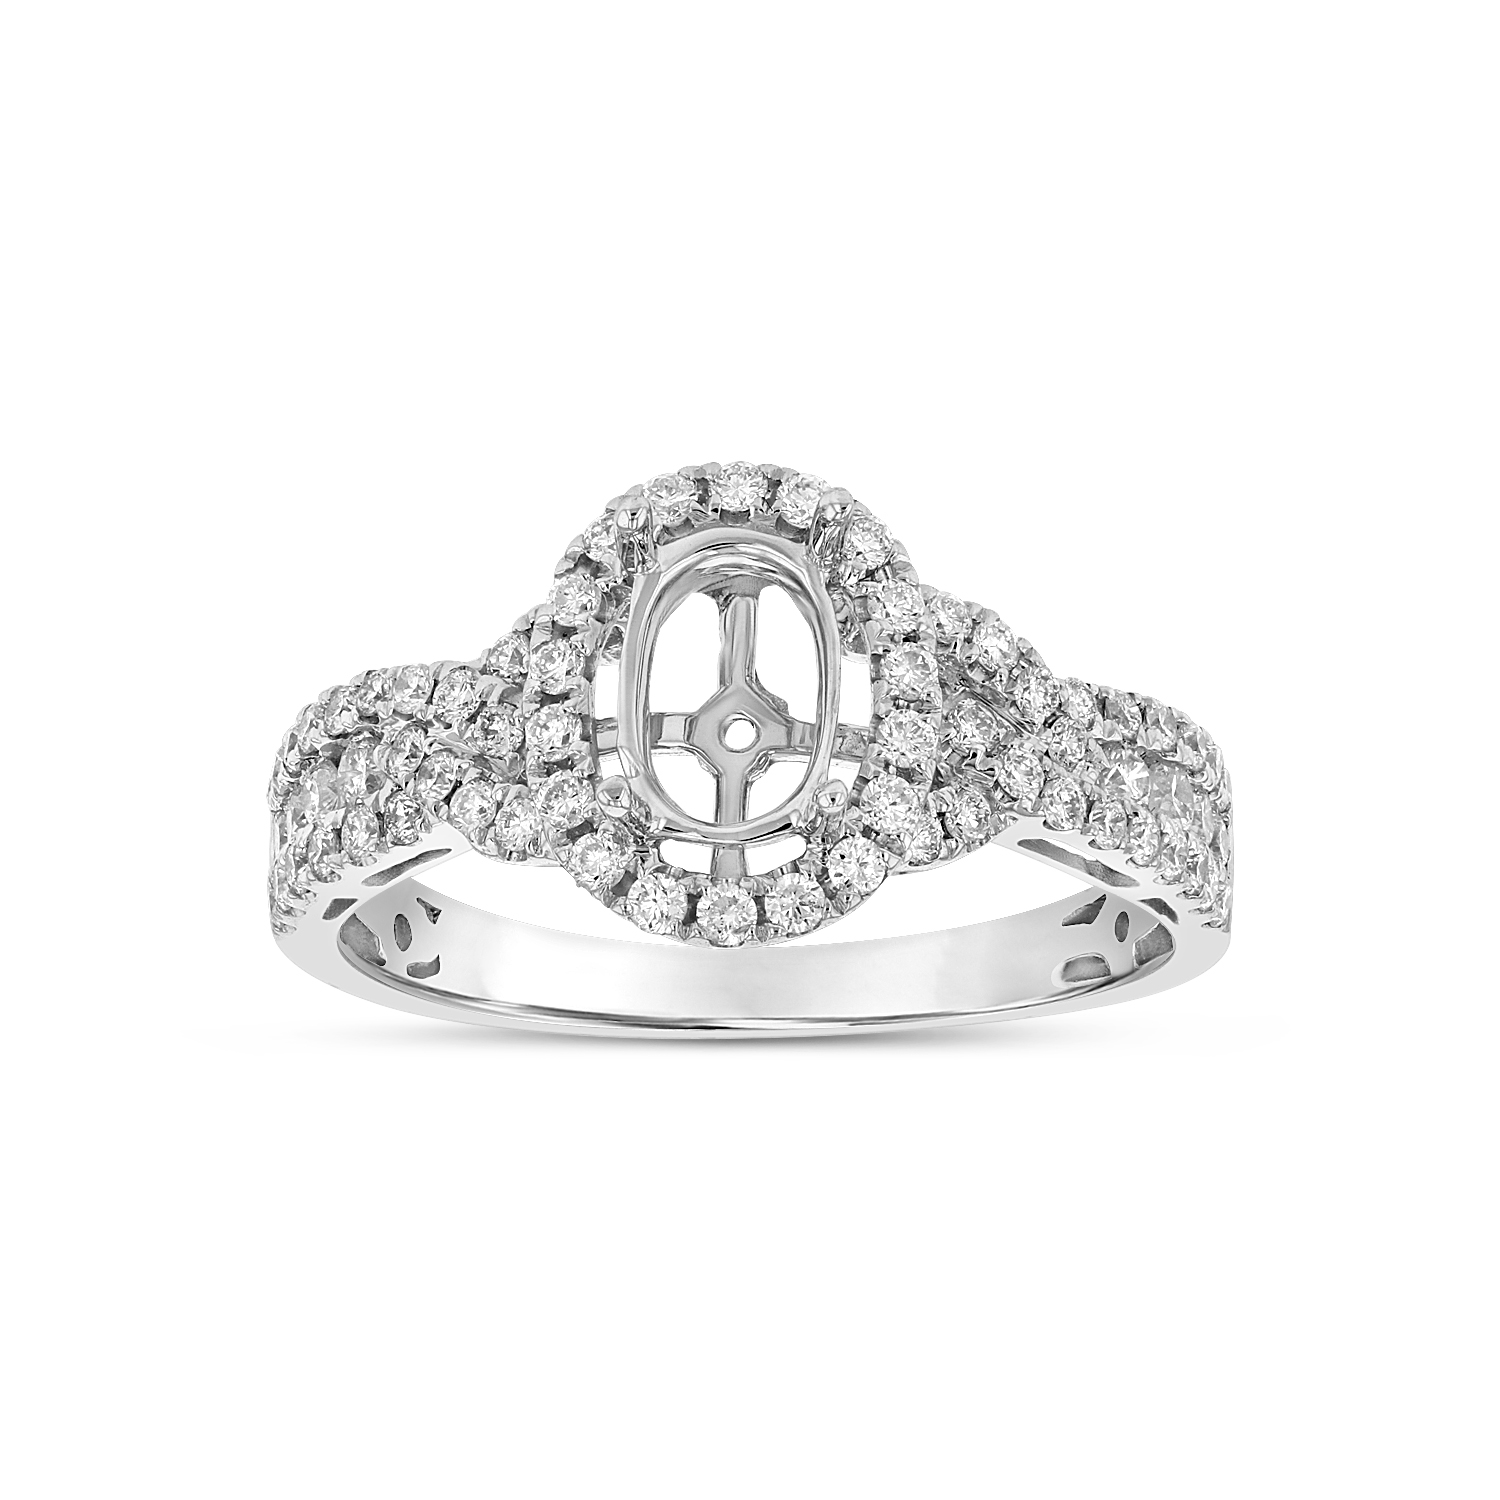 View 0.54ctw Diamond Semi Mount Engagement Ring in 18k White Gold